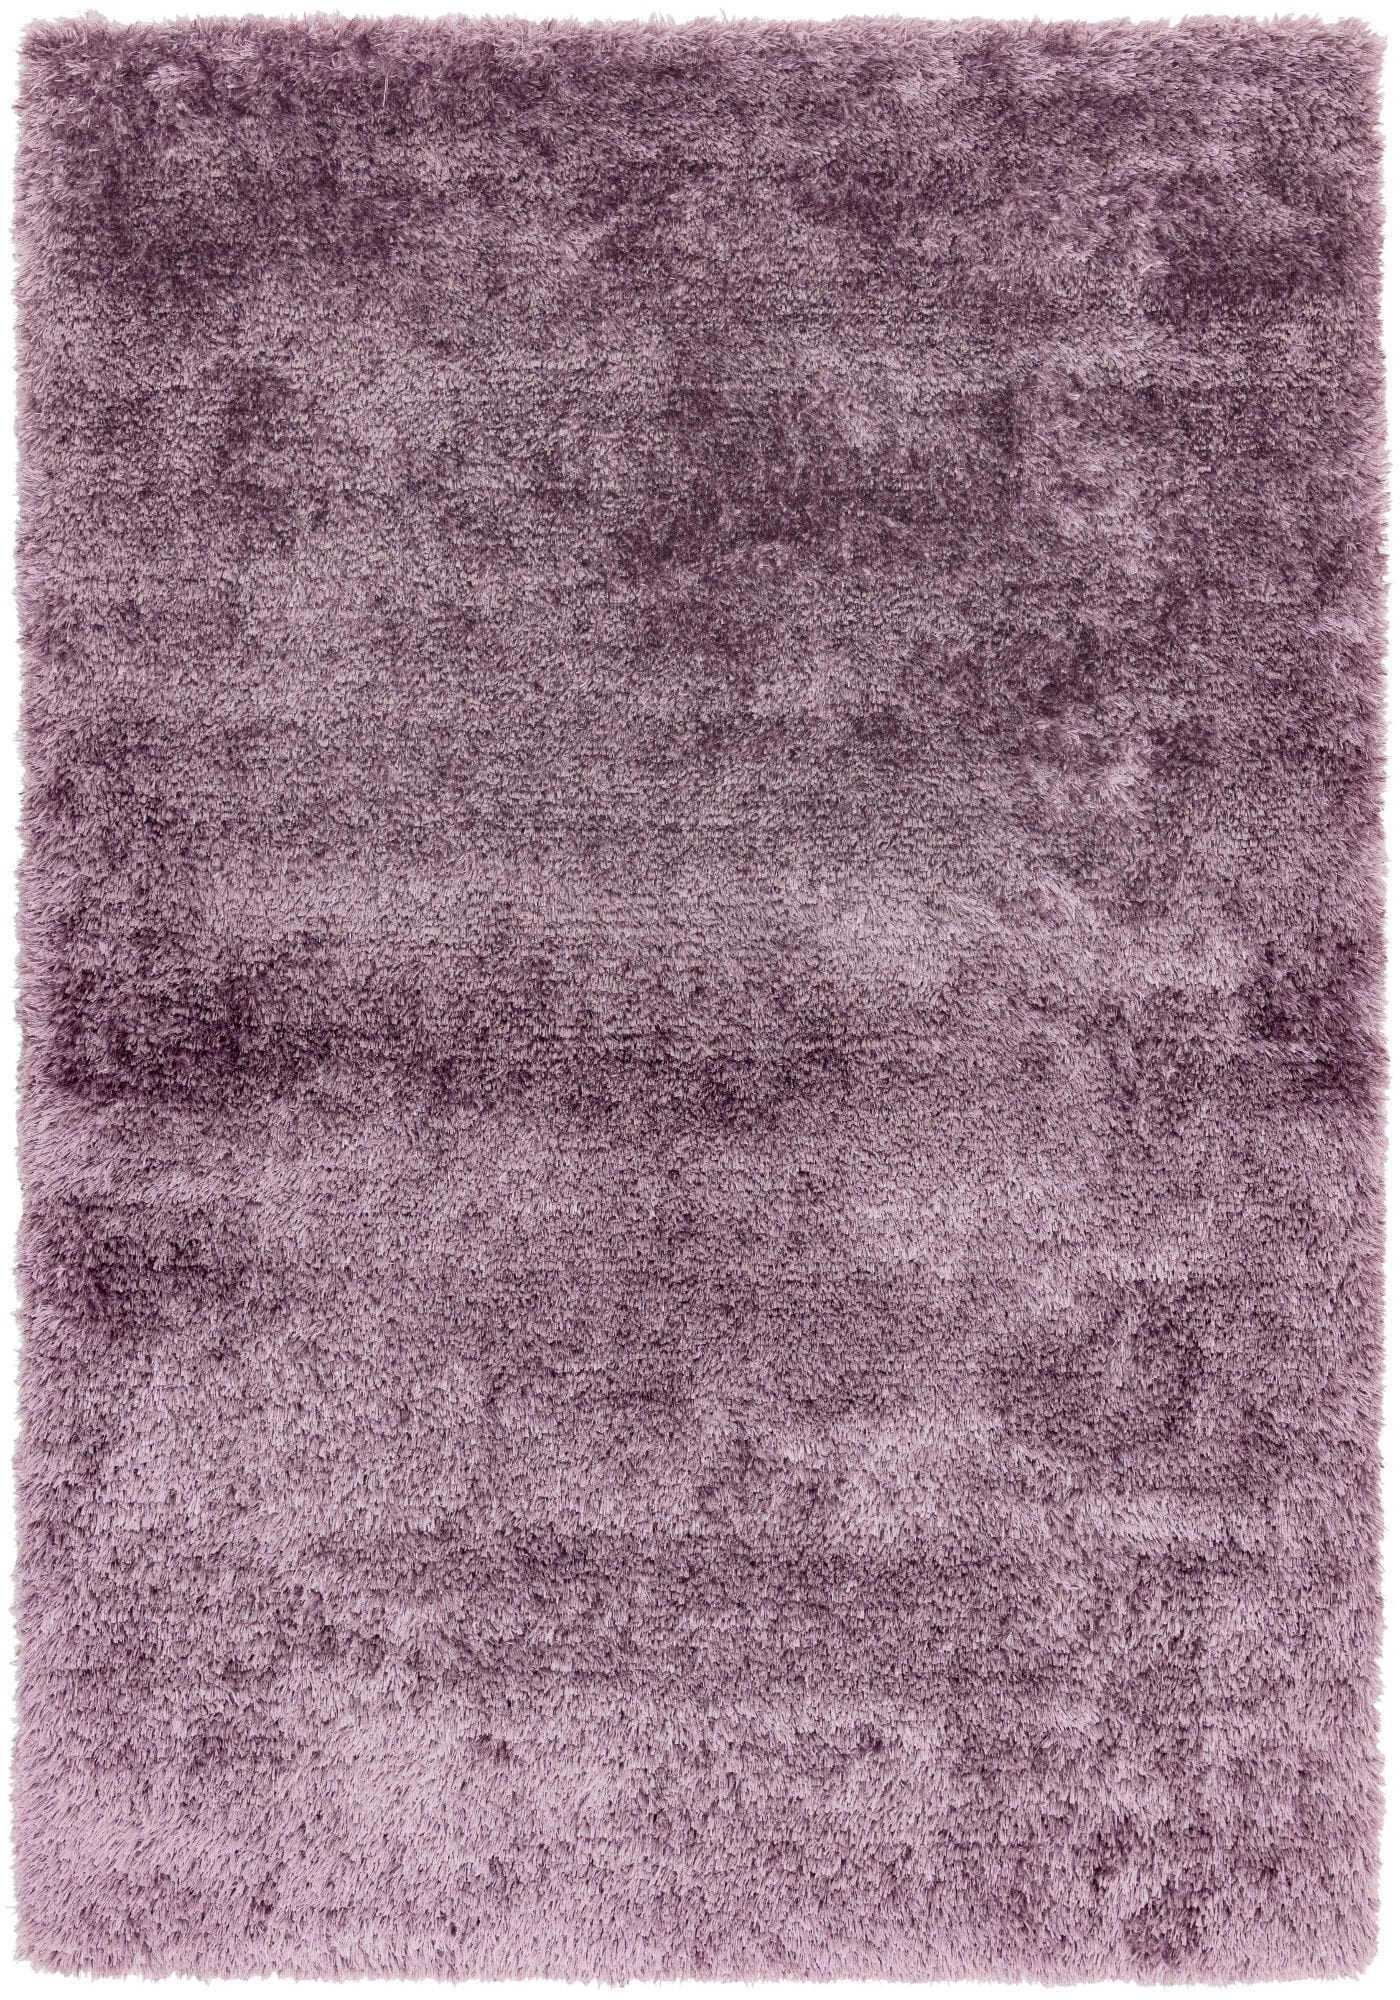 Nimbus Rug By Asiatic Carpets Colour Heather Rugs Uk